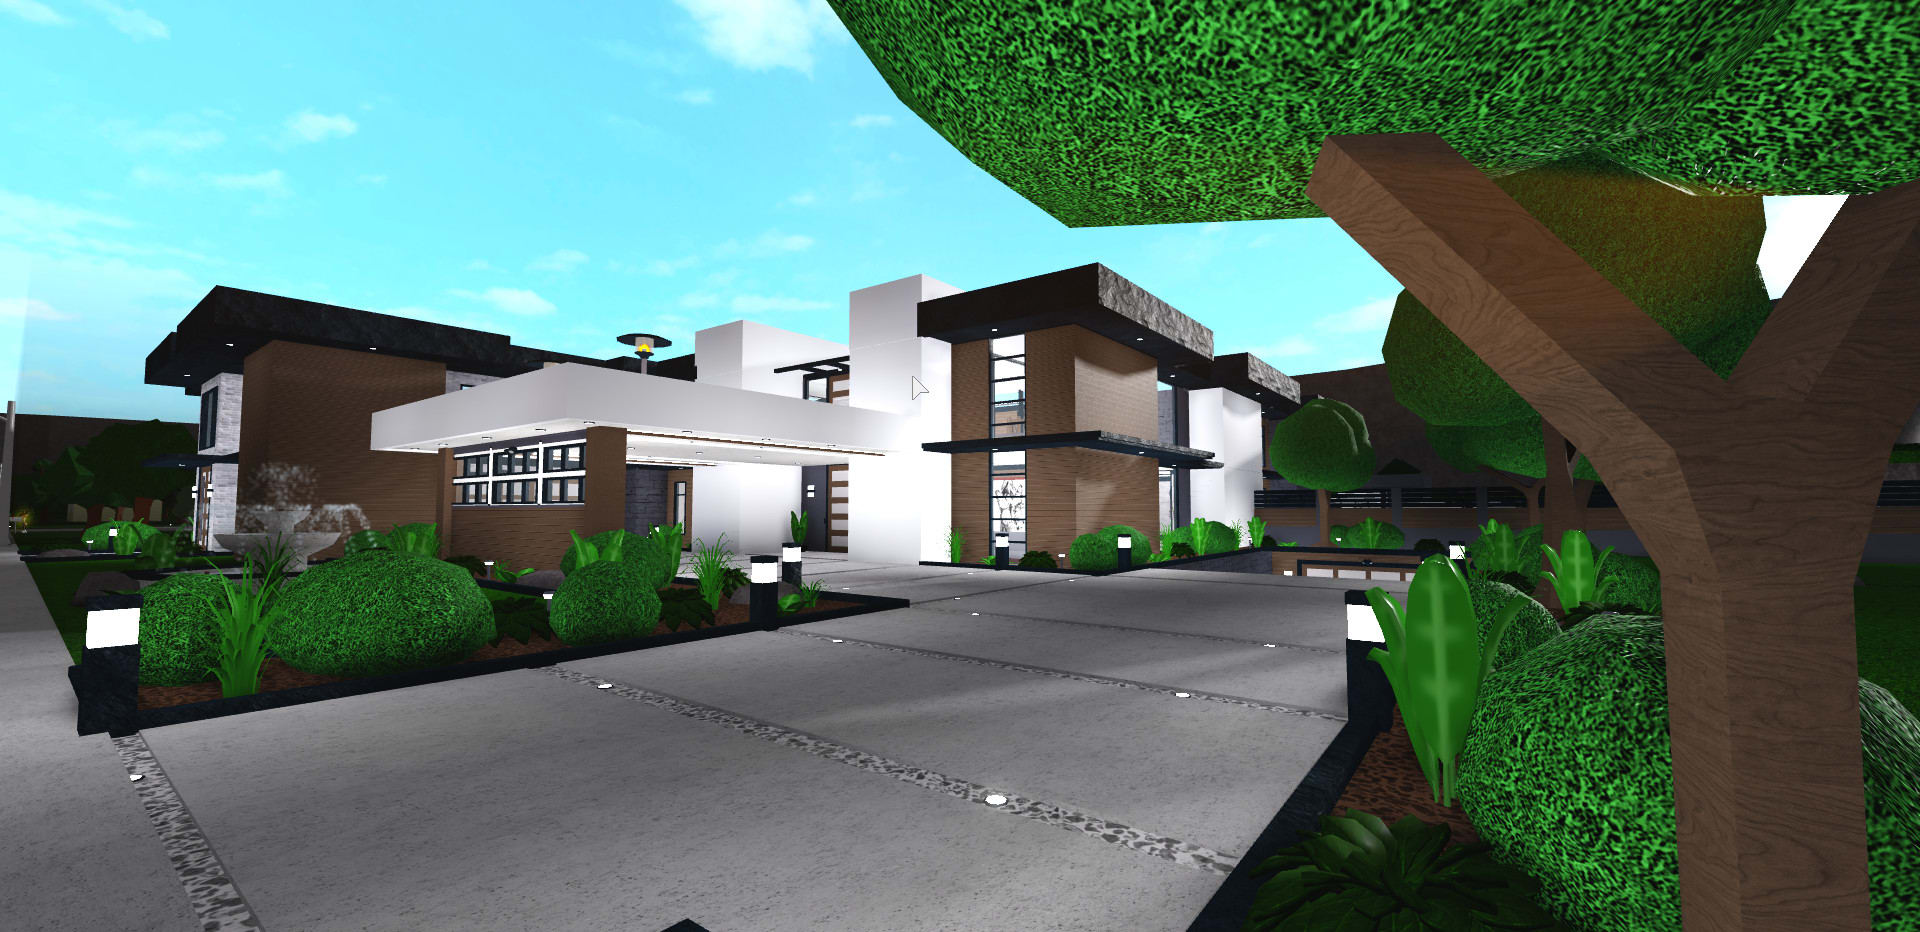 Build You Any Type Of House In Roblox Bloxburg By Emilisank